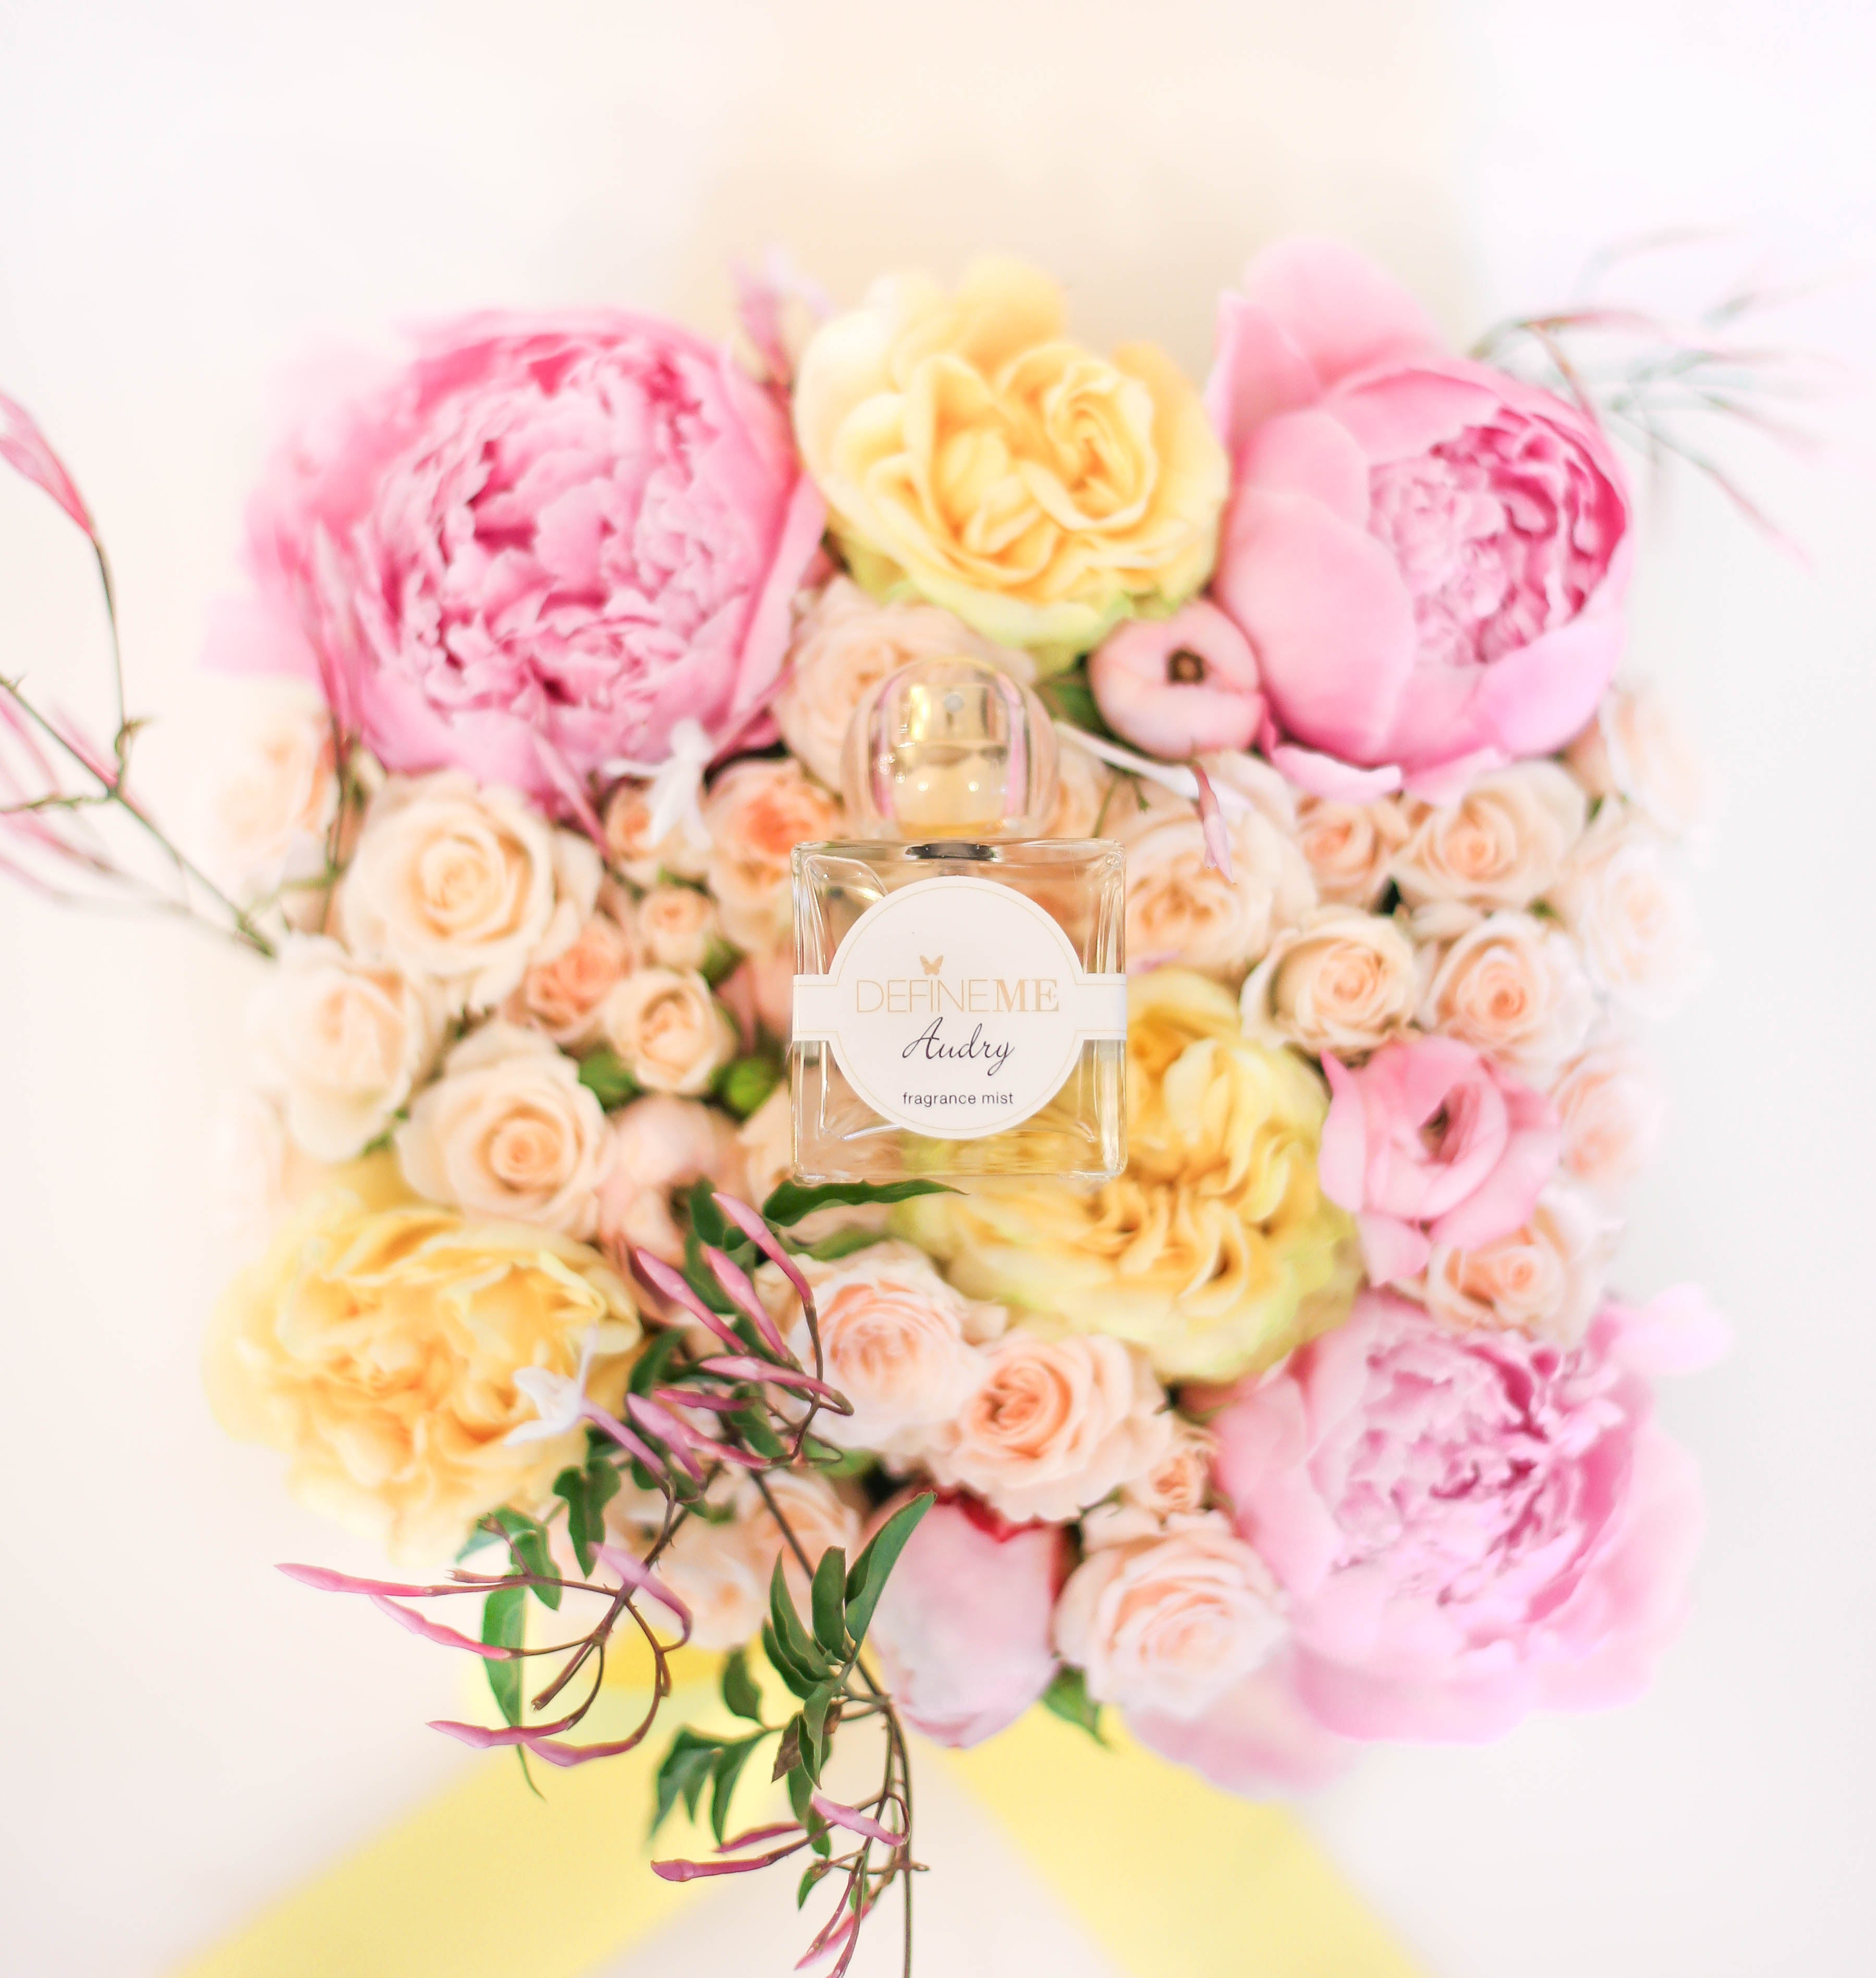 DefineMe Fragrance Audry Mist sitting atop a bunch of brightly colored pink and yellow flowers.